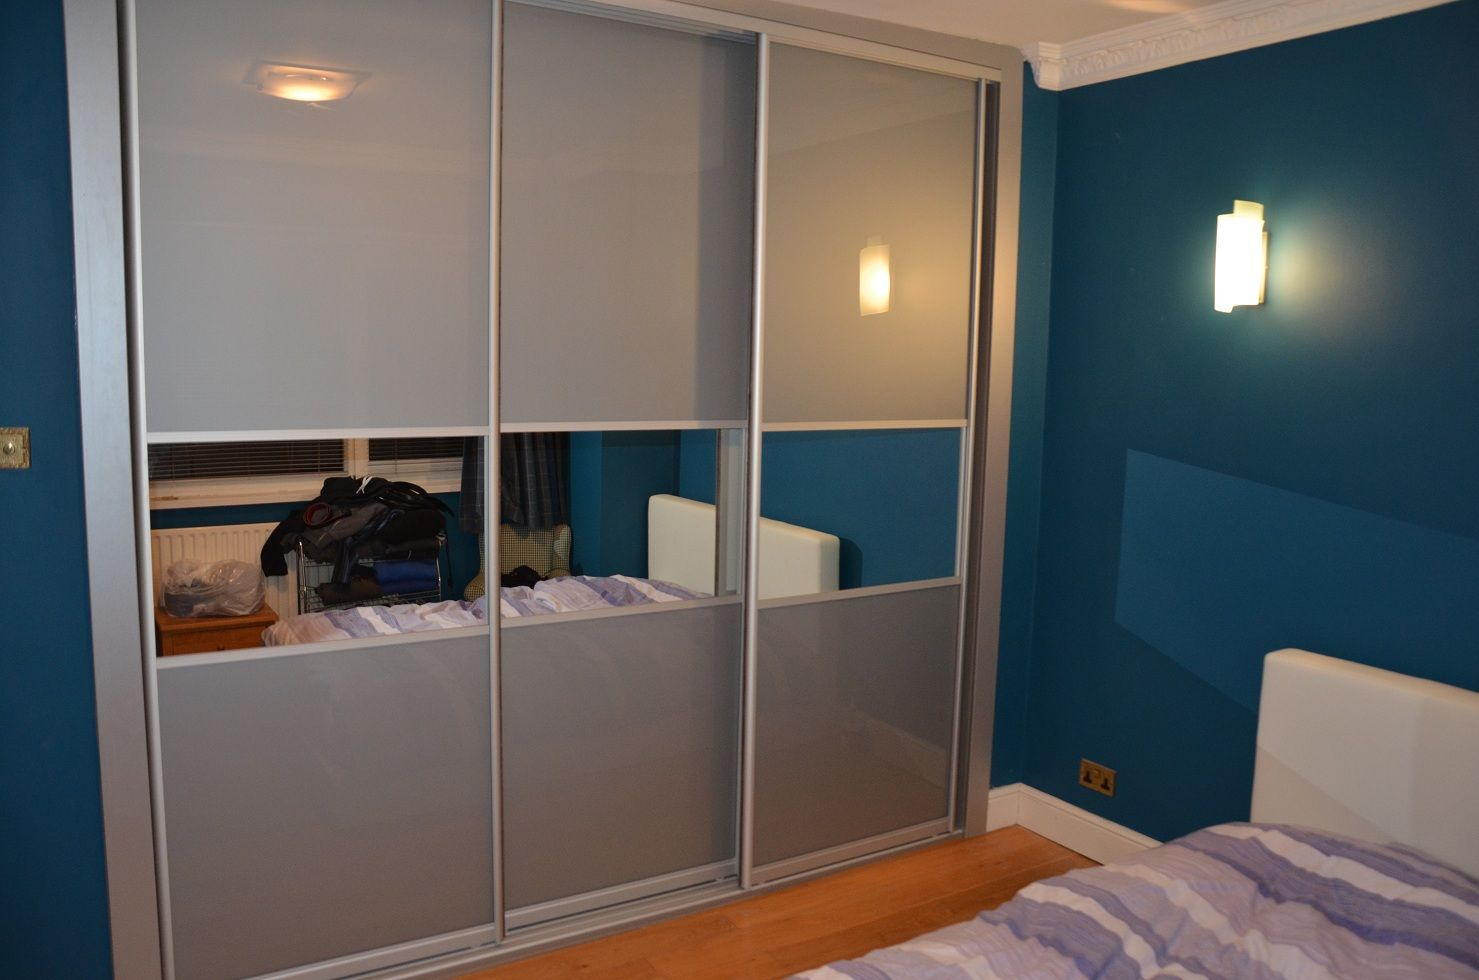 Bedroom Alcove Sliding Wardrobe With Sliding Doors Made From Glass